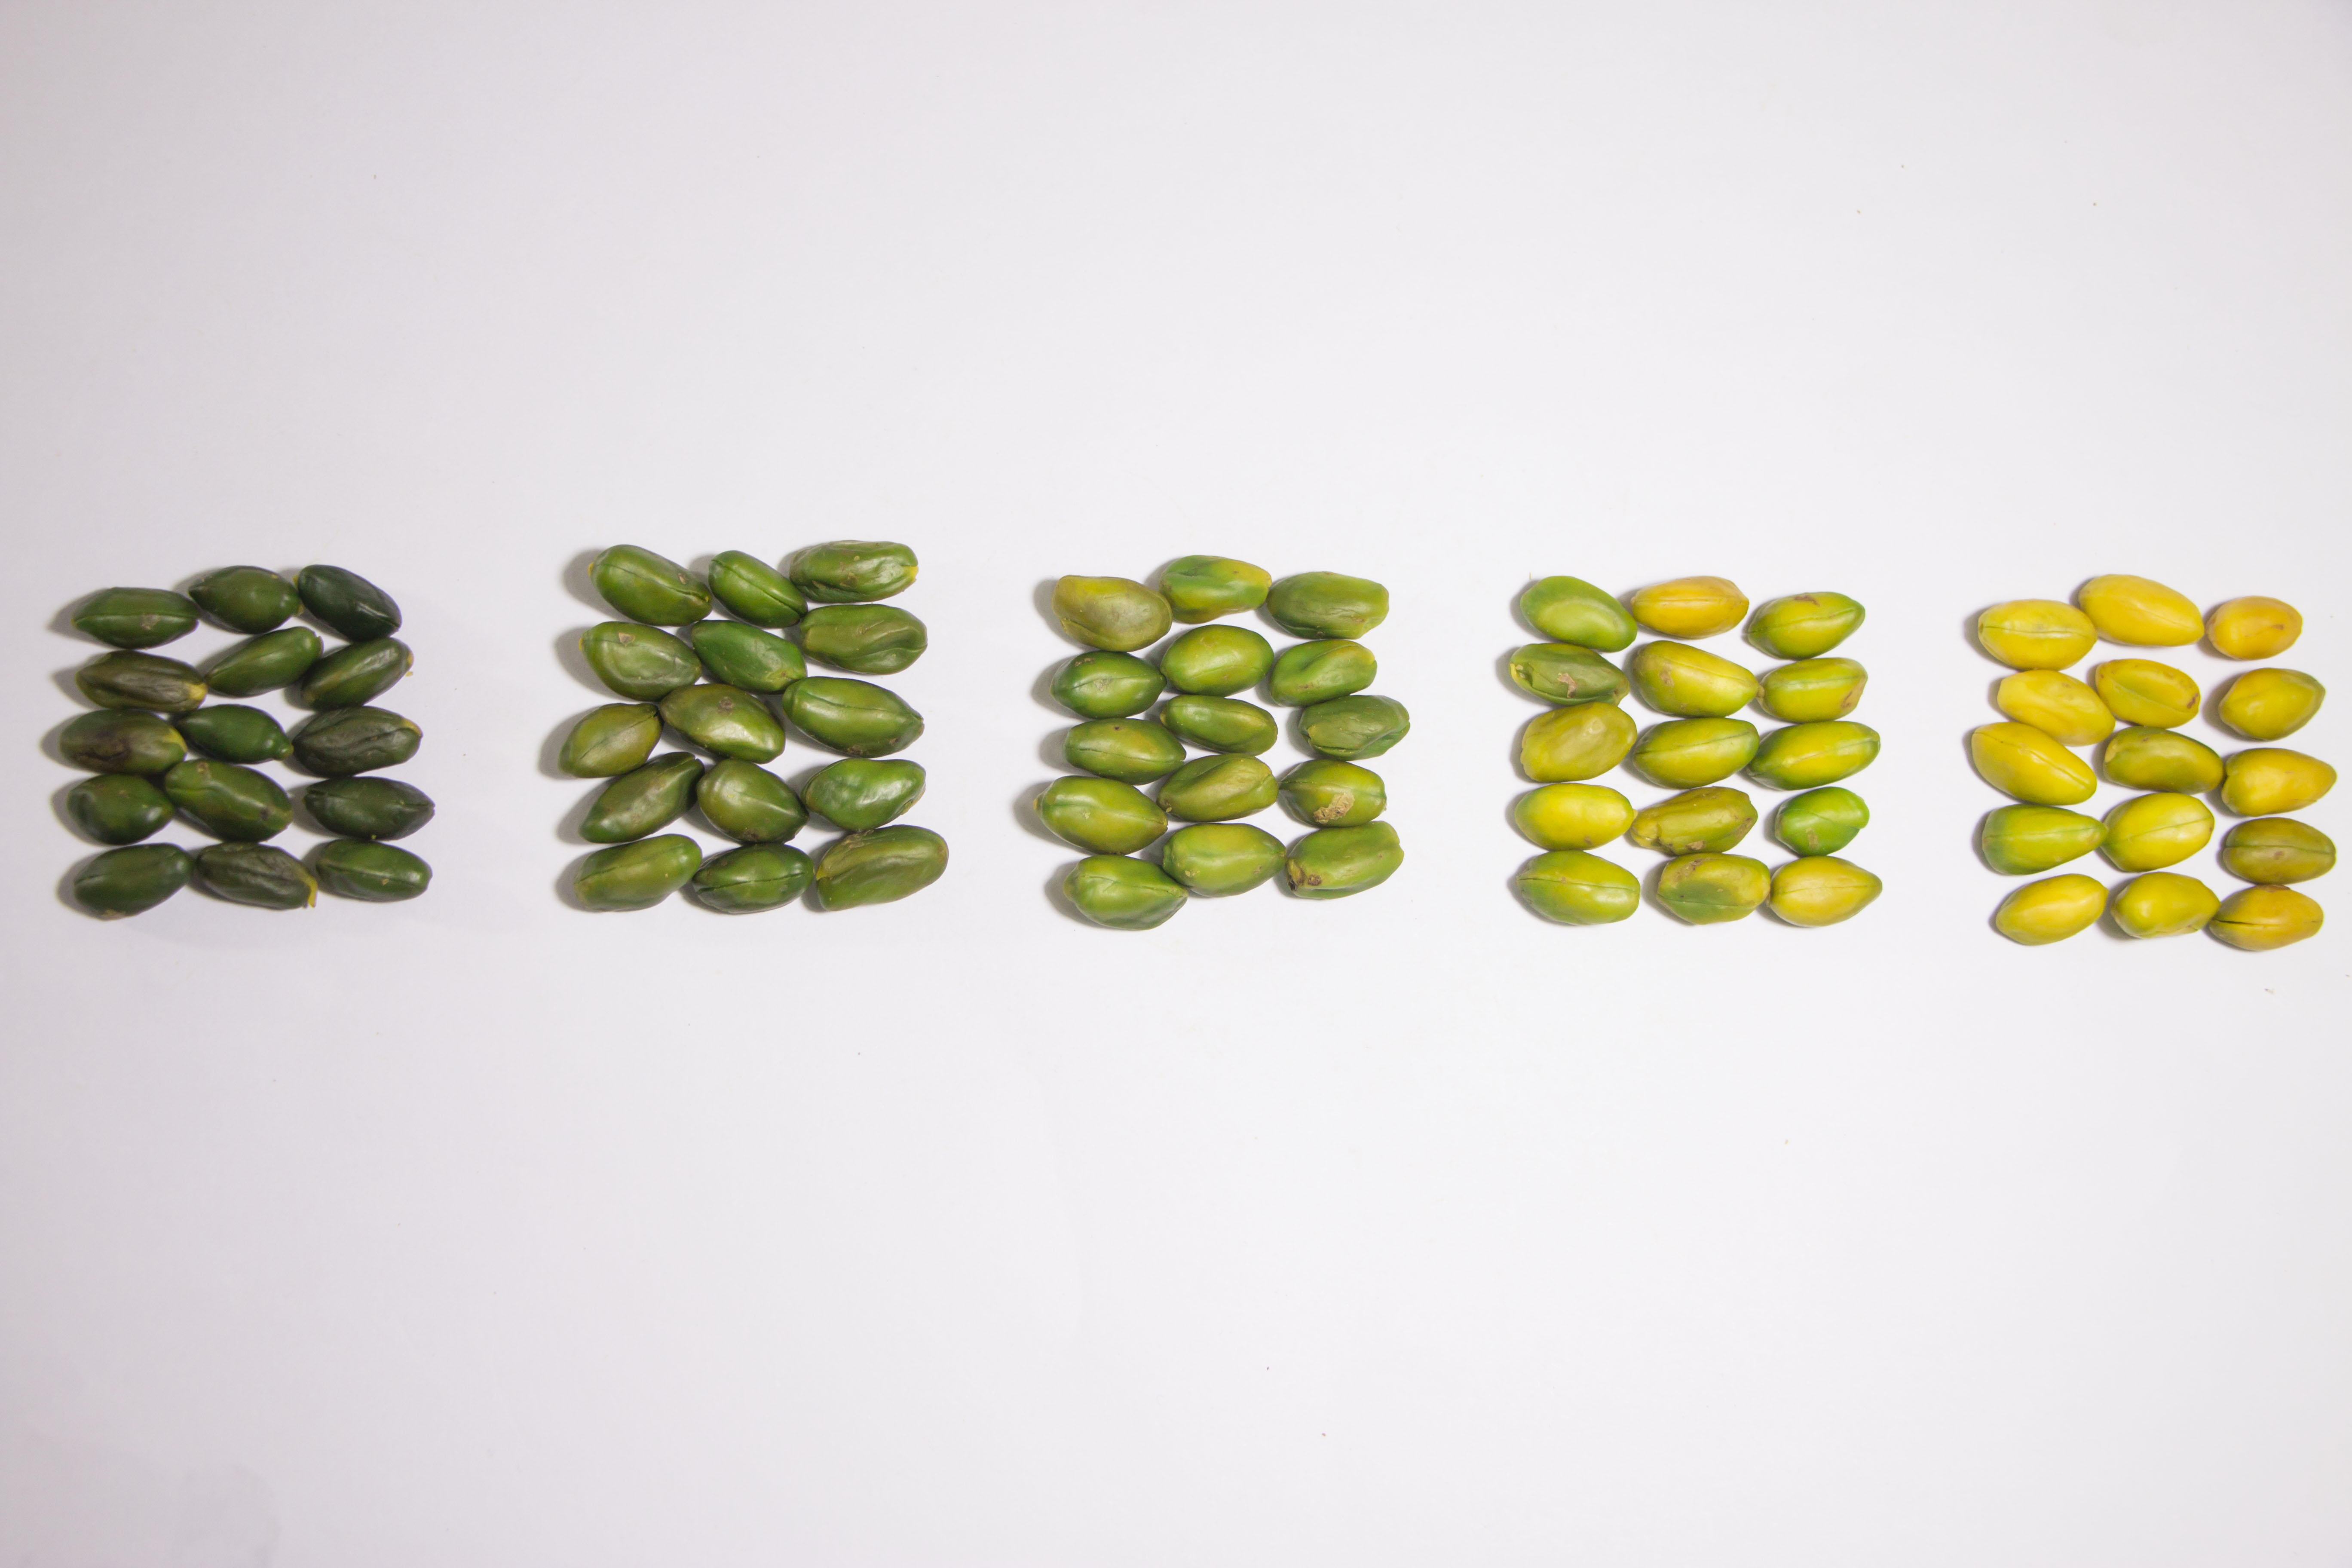 Color_spectrum_of_green_pilled_pistachio_kernel_square